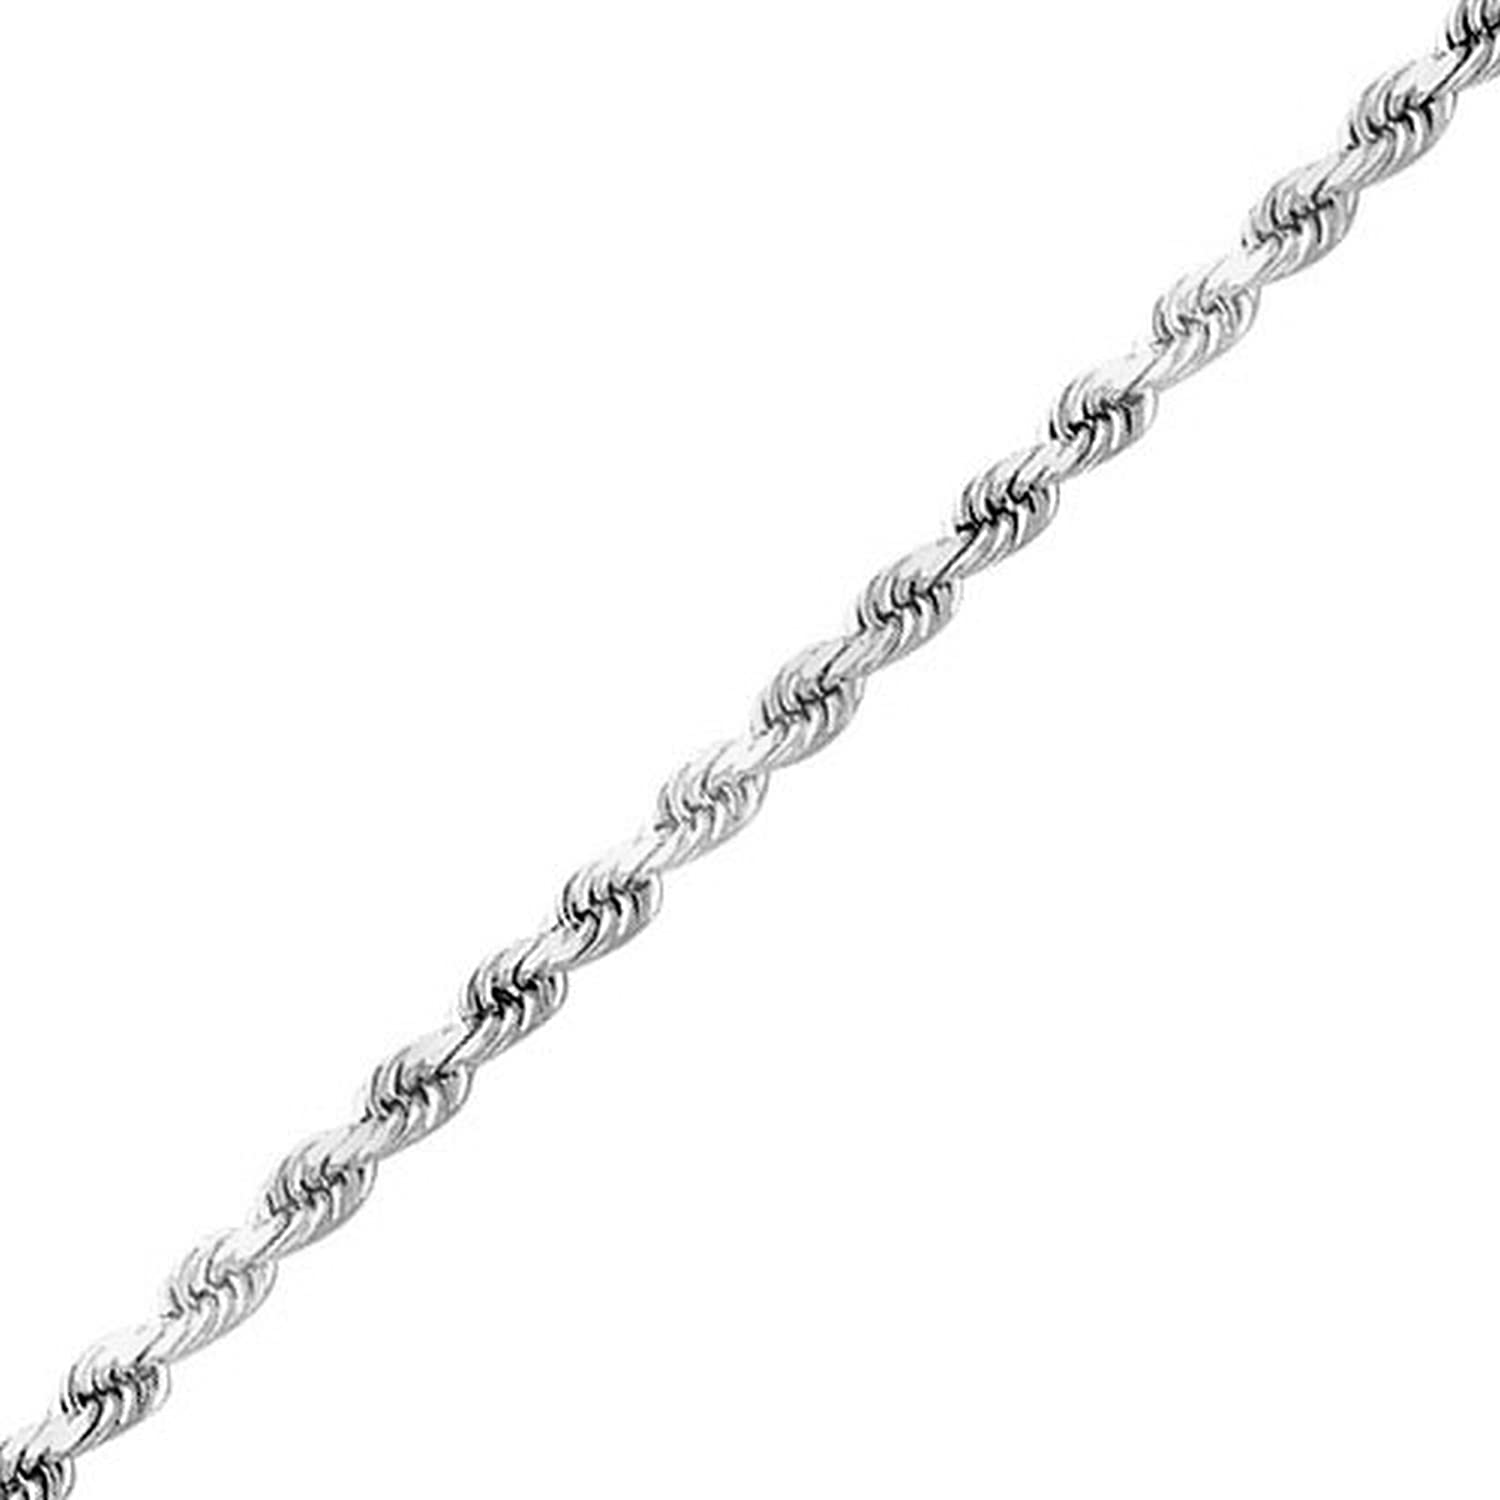 Sterling Silver 1.4mm Rope Chain Italian Kezef Creations CHRP030-10